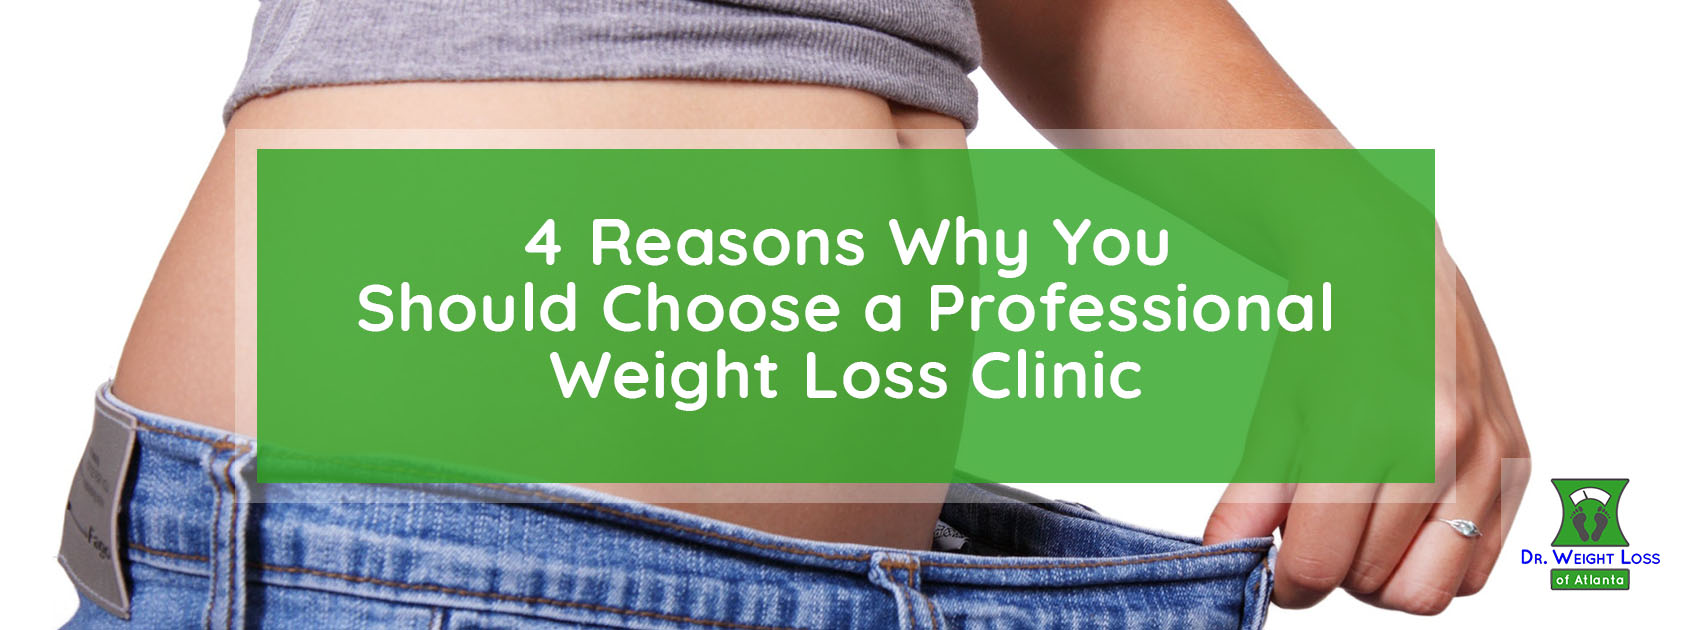 weight loss clinics nyc phentermine